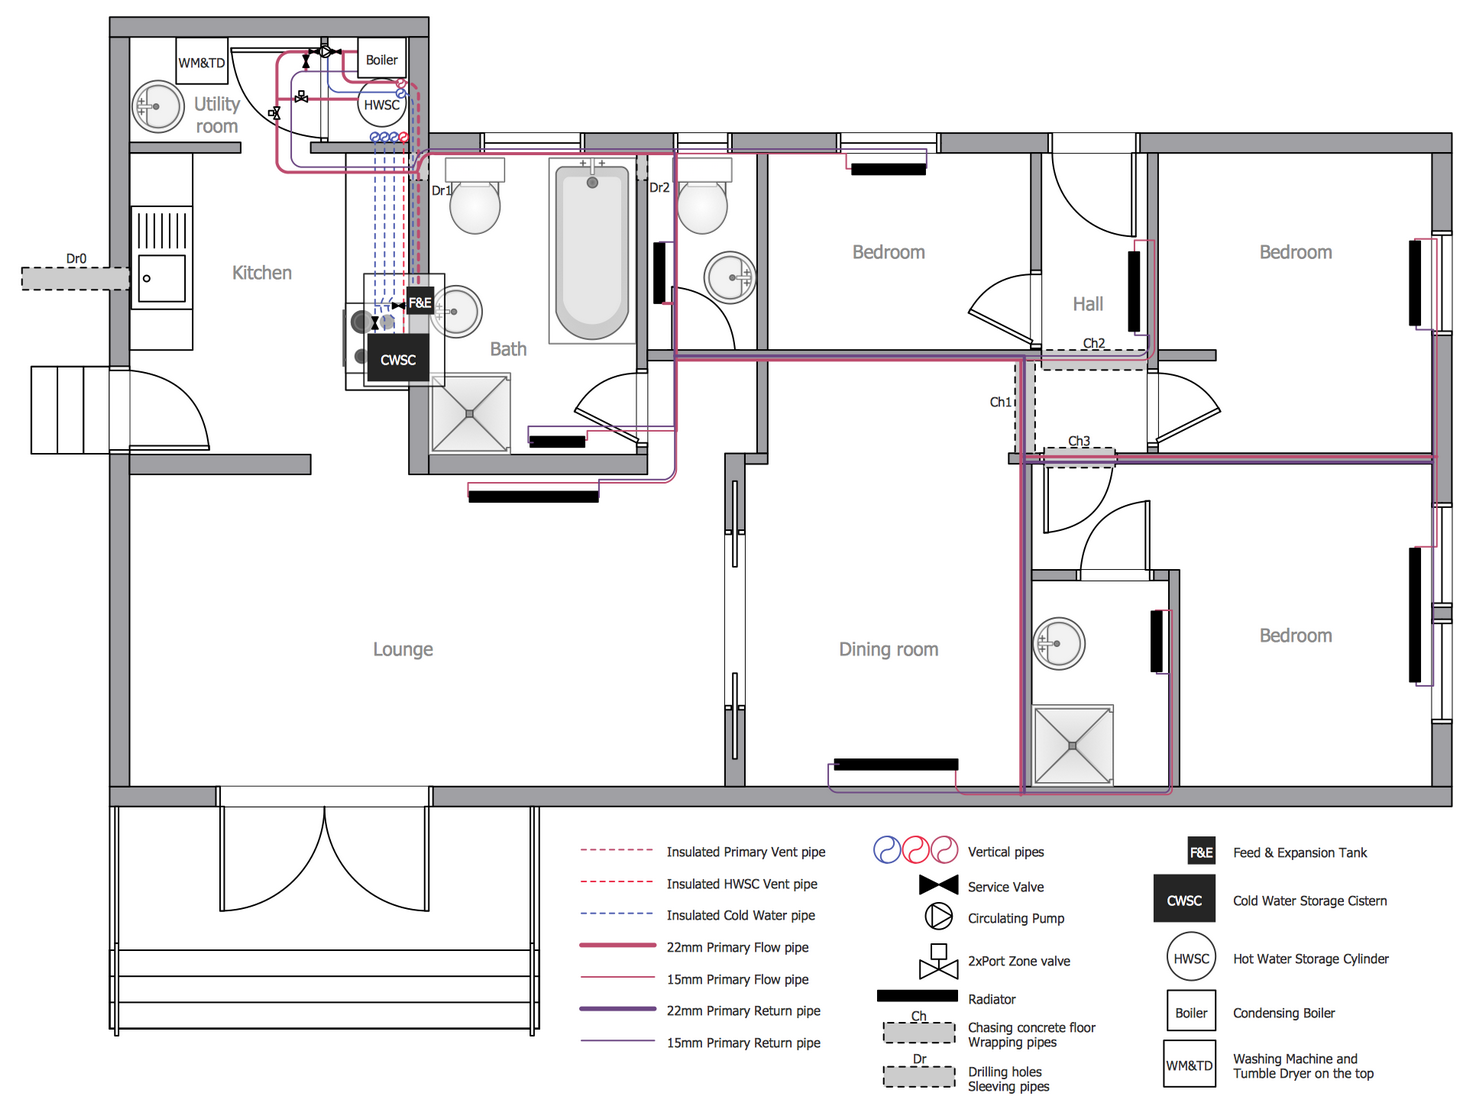 Plumbing layout for my house